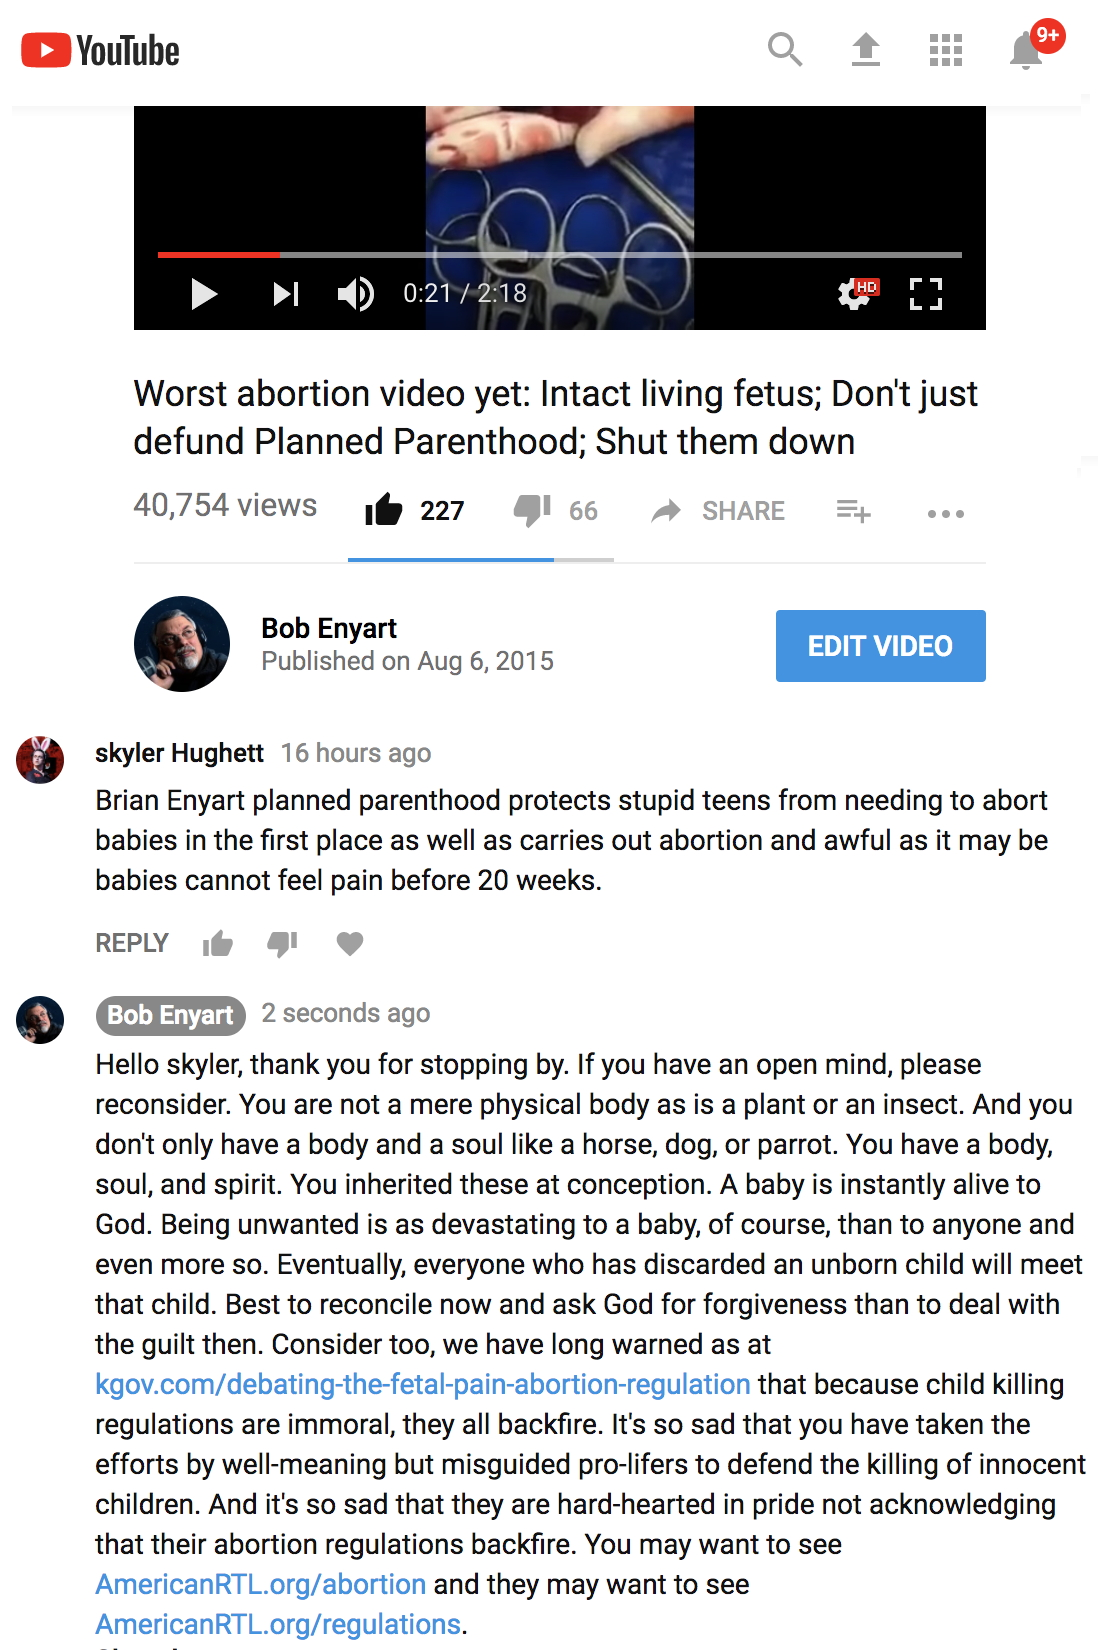 YouTube comment shows that fetal pain regulations actually promote abortion